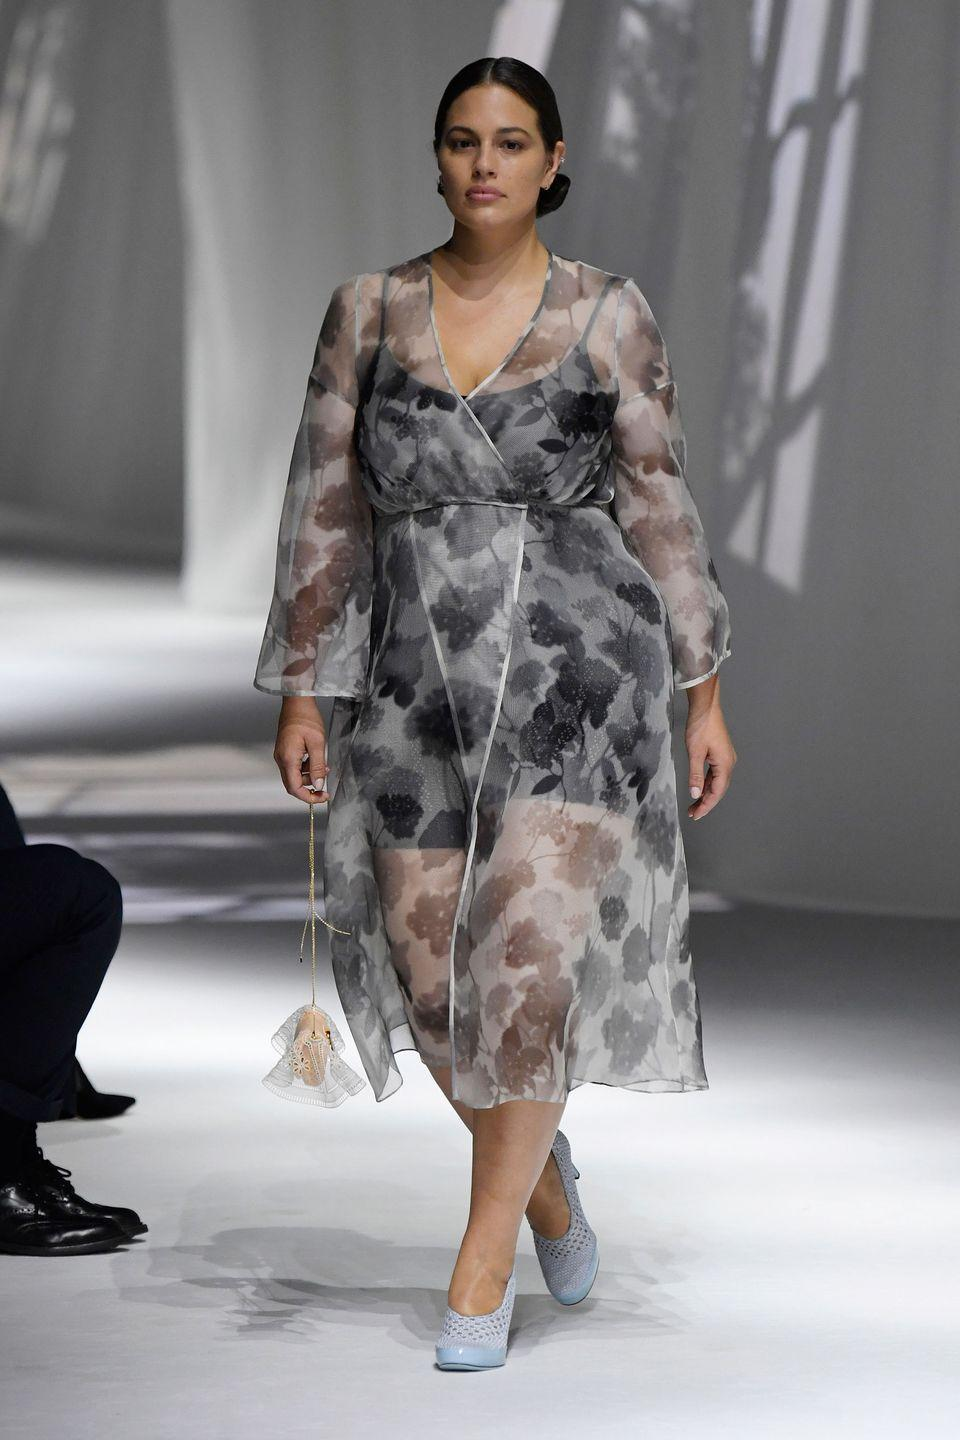 <p>Silvia Venturini Fendi's quiet and introspective vision for spring 2021 is a metaphor for our era of social distancing. The window leitmotif which featured prominently throughout her collection came to the Fendi creative director during Italy's lockdown last spring. Venturini Fendi spent that time watching the world go by from her bedroom window. And by the looks of it, the view from her room is one even Lucy Honeychurch would admire. That inspiration was evident most literally, of course, in Venturini Fendi's window-pane print dresses. There was also a clever play of transparency and texture through her choice of materials which put the focus on the rigor of Italian craft: lace, latticework furs, and flourishes of <em>ajouré</em> flowers that expose skin to create layers of light and shade. Even the house's signature Baguette bag got a window treatment, dressed up in <em>tombolo aquilano</em> sugar-coated lace. The technique has been refined by Benedictine nuns—women who know a thing or two about deep contemplation—since the 15th century. <em>—Alison S. Cohn</em></p>